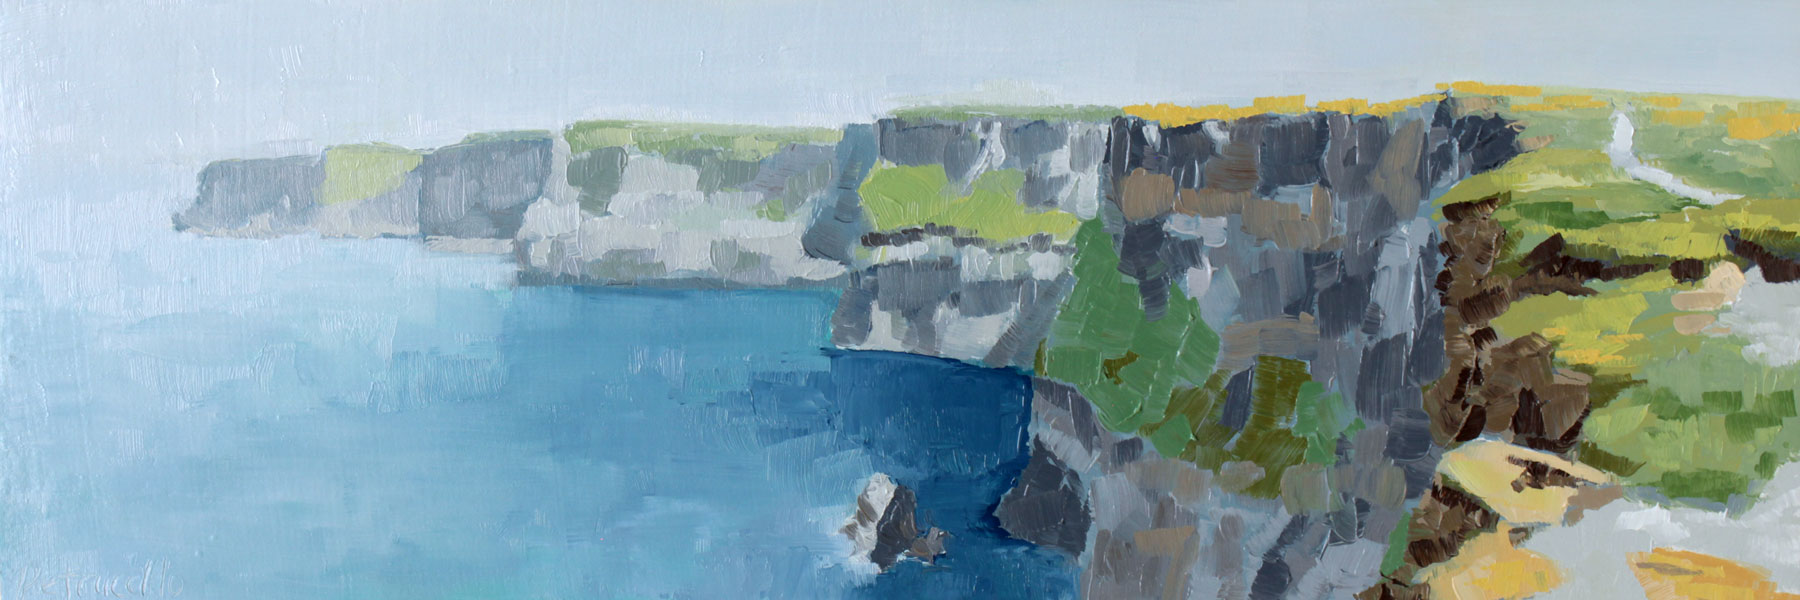 oil painting of the path that leads along the Cliffs of Moher in County Clare, Ireland